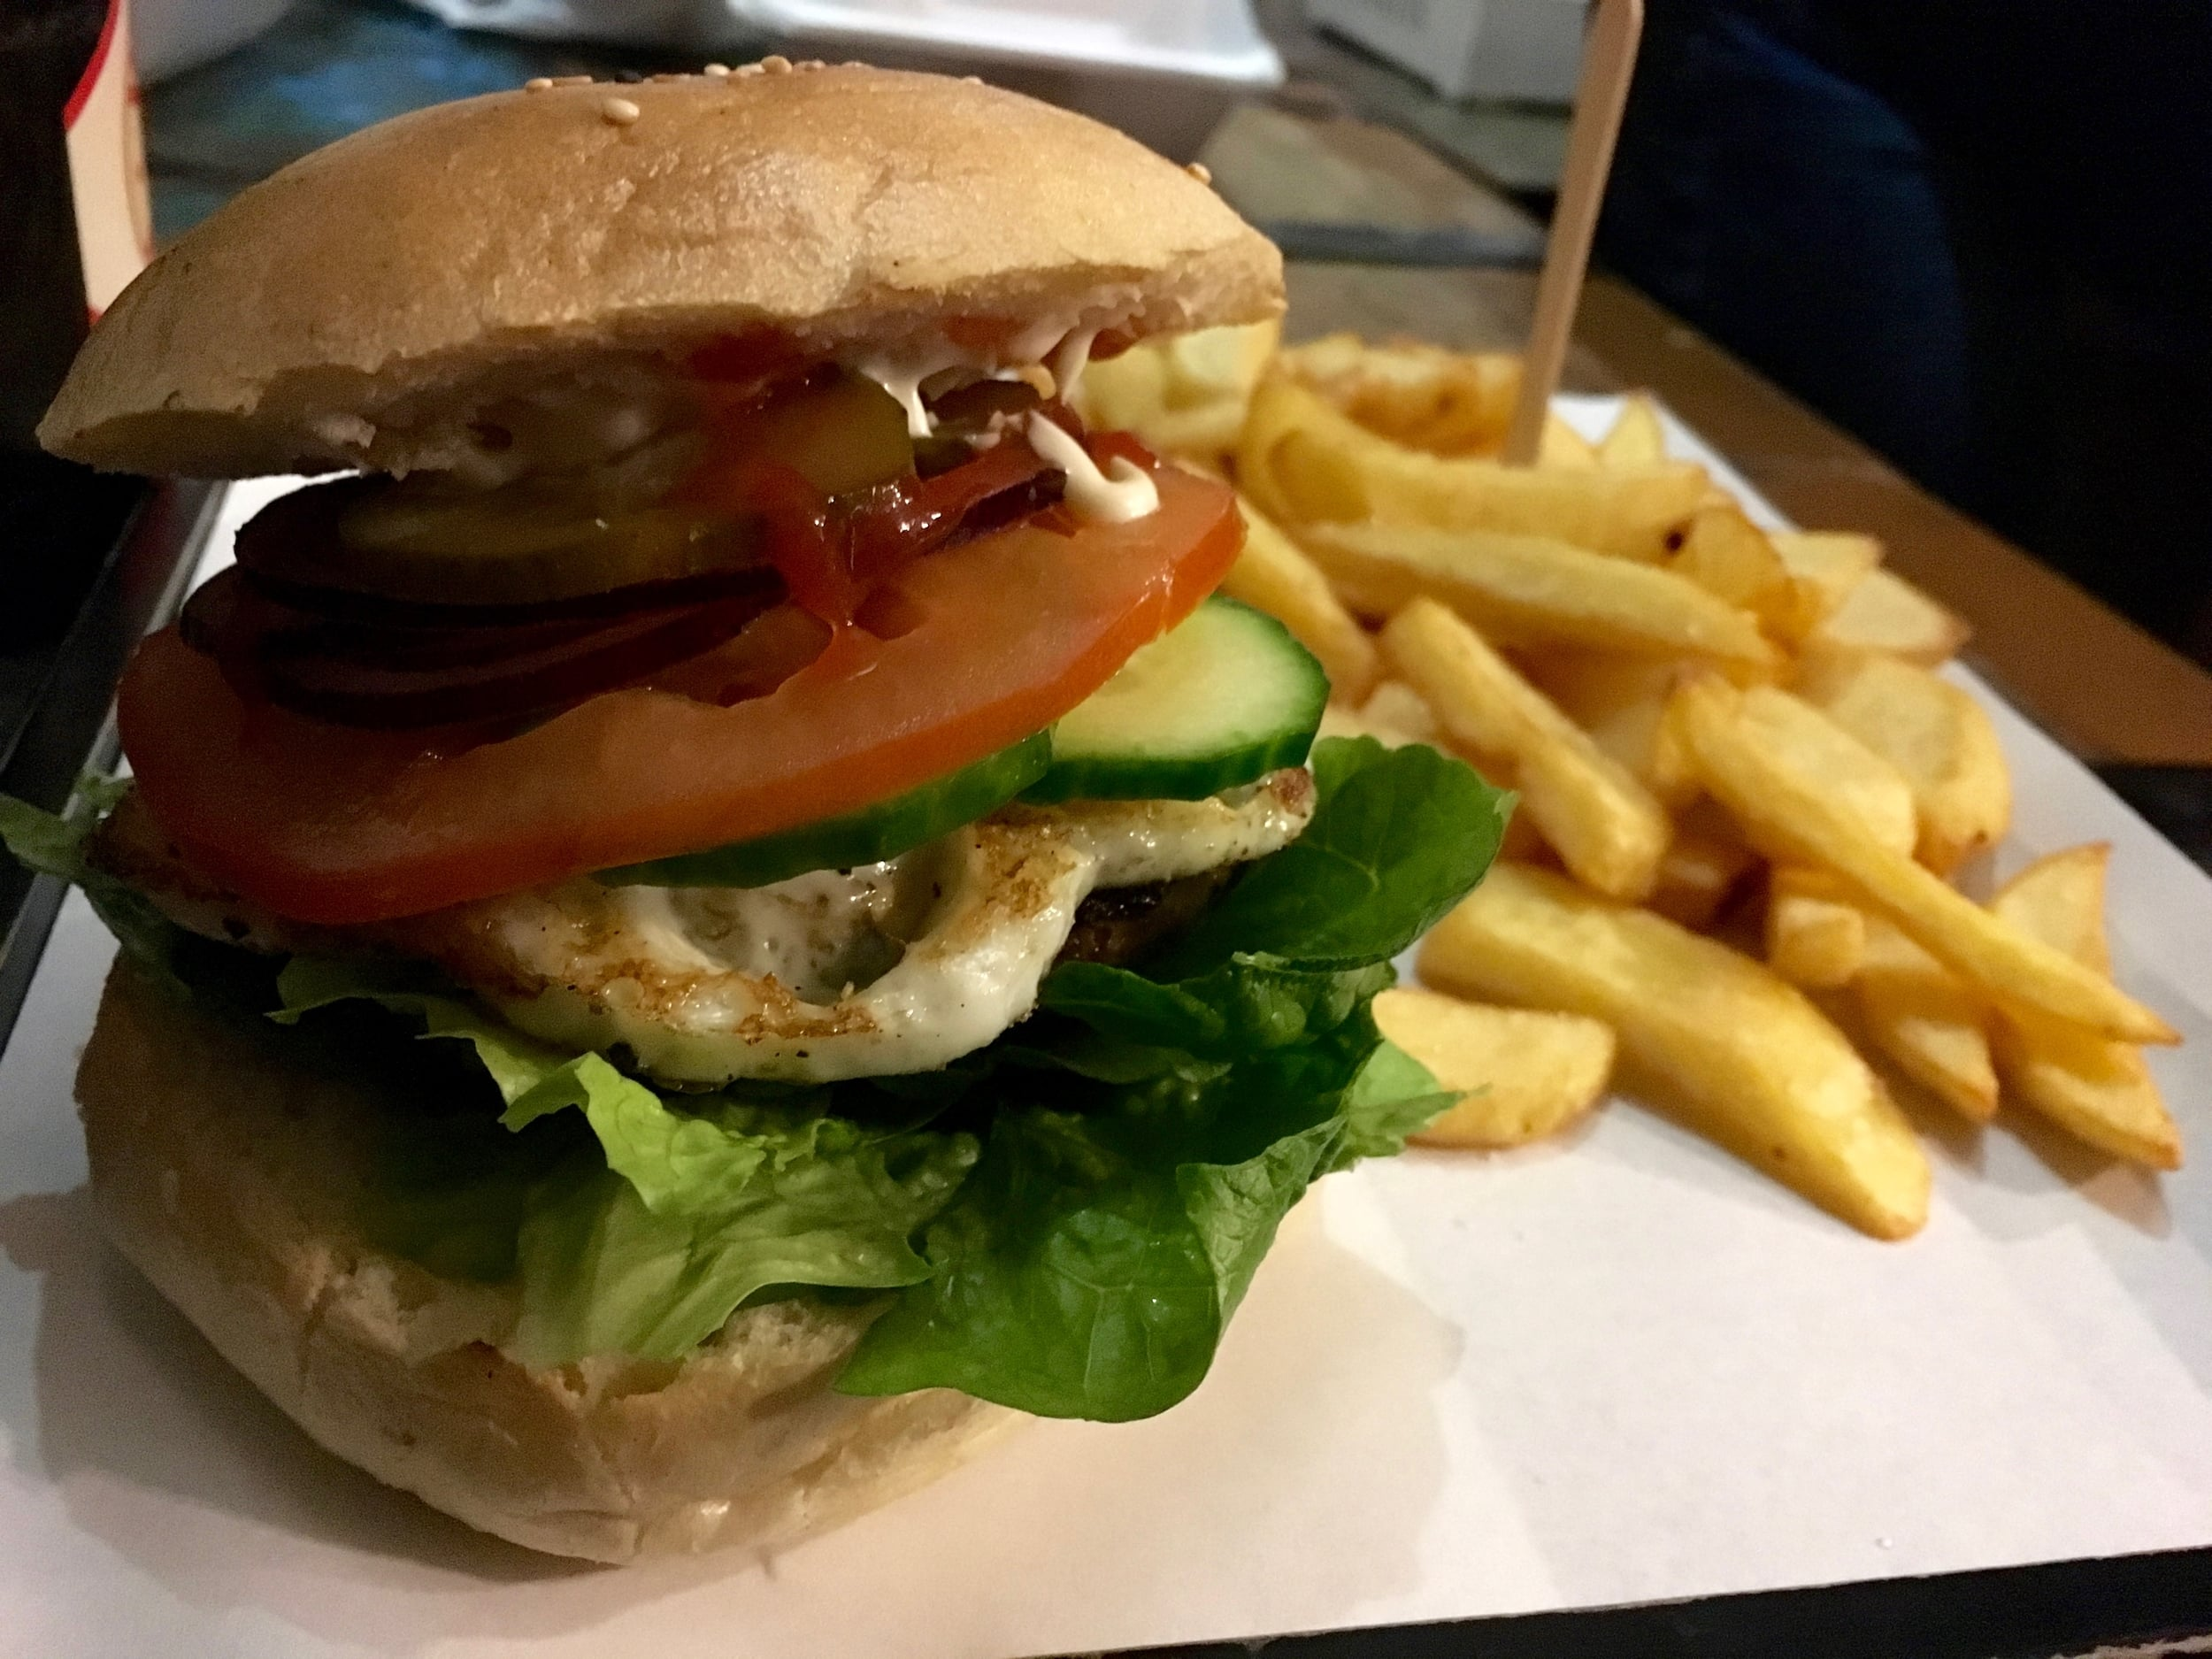 The Egg Burger with fries